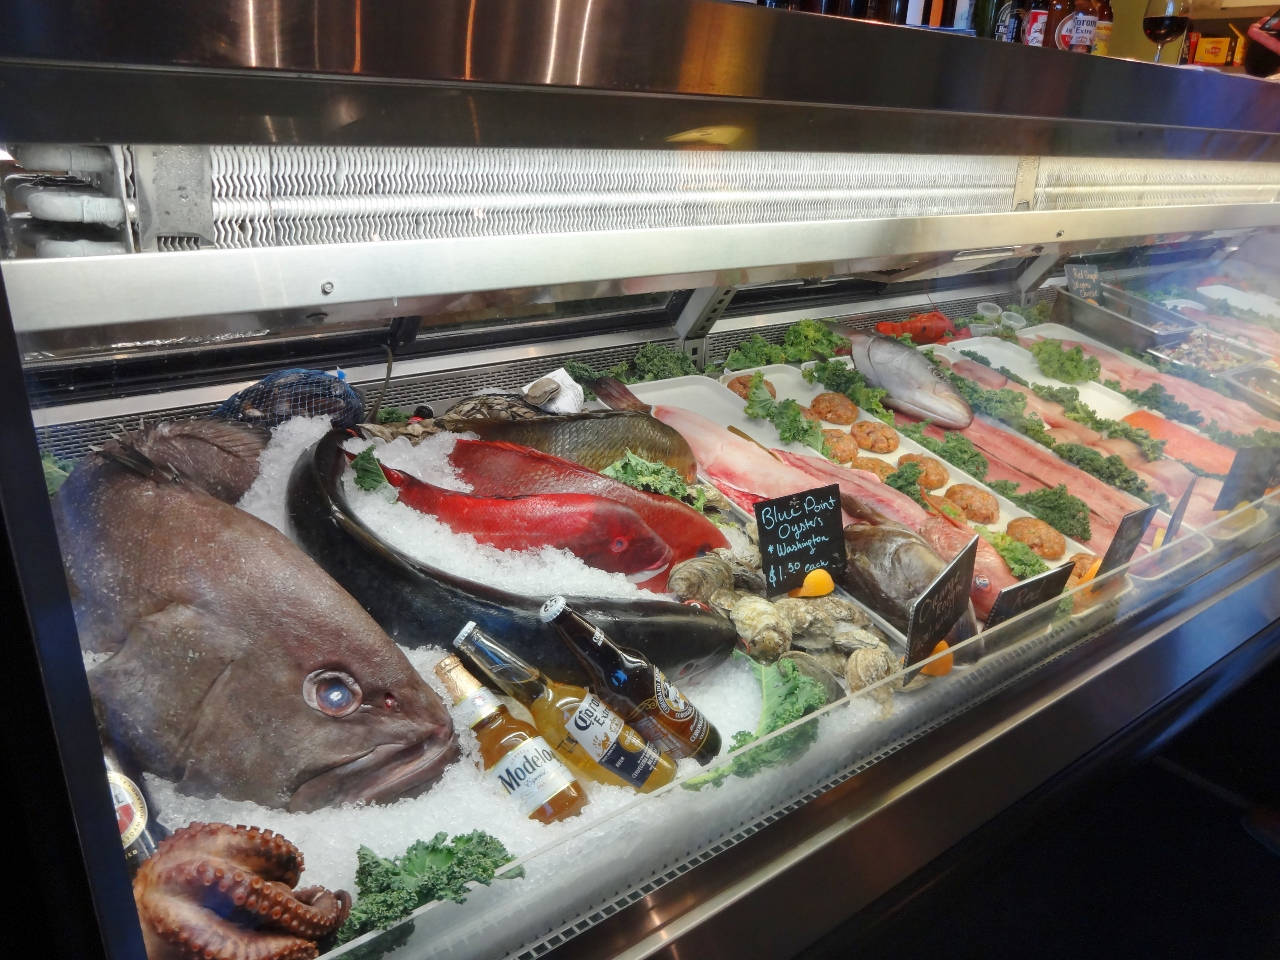 Fresh catch fish market and grill any second now for Family fish market menu